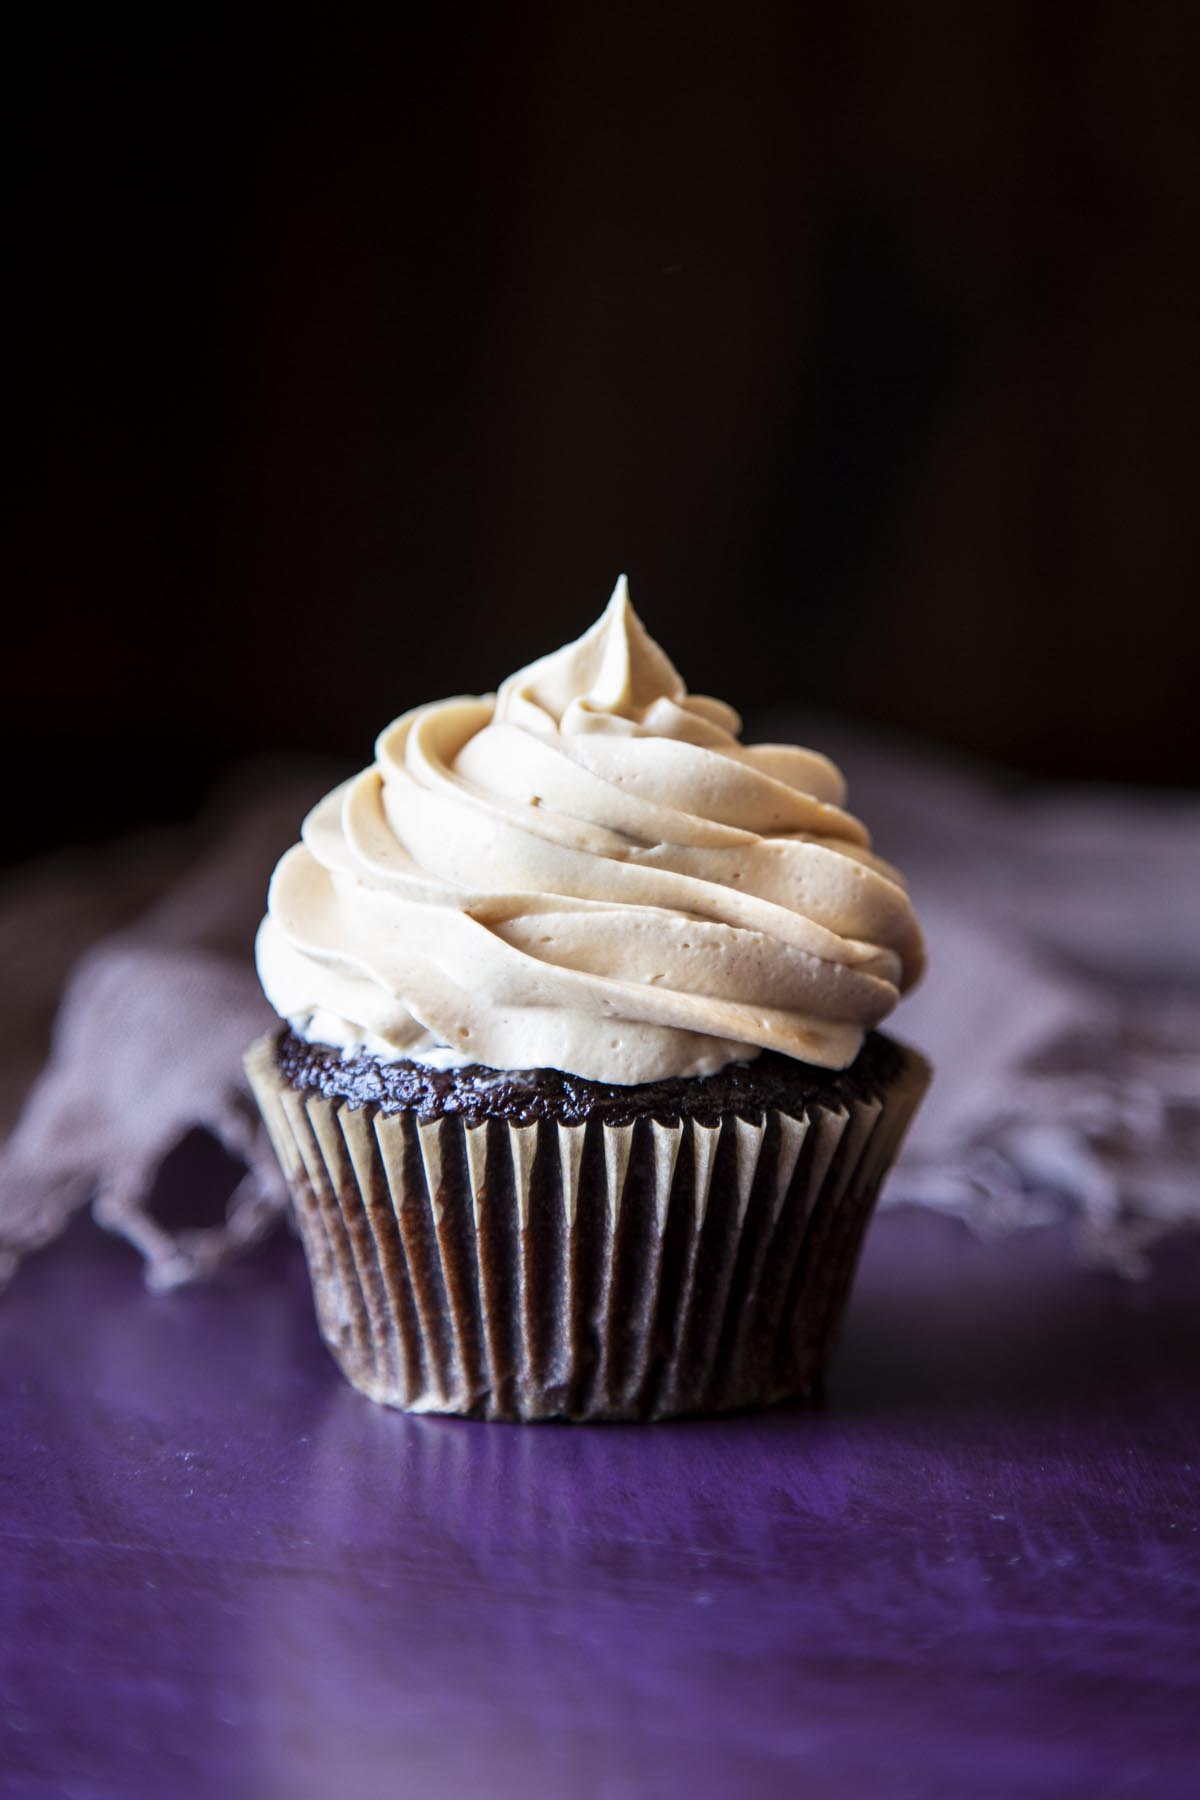 A chocolate cupcake with peanut butter frosting on top